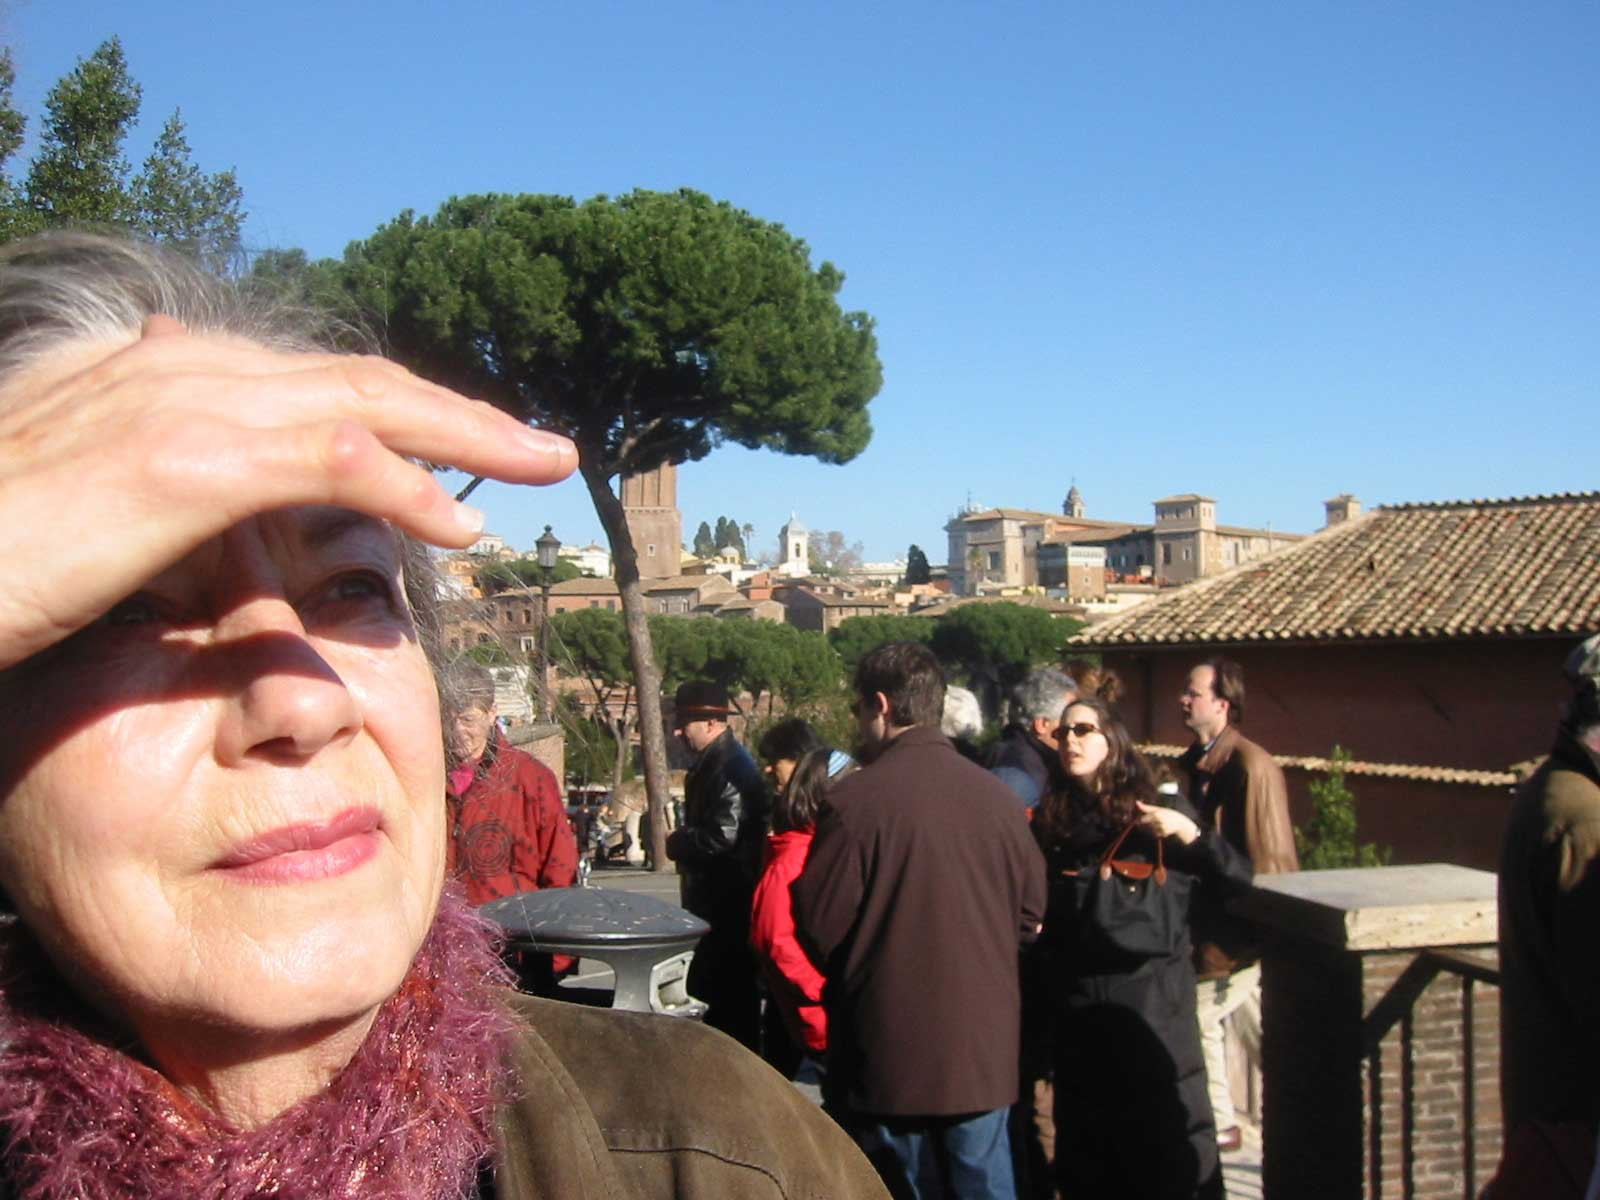 Lindsey in Rome, January 2004